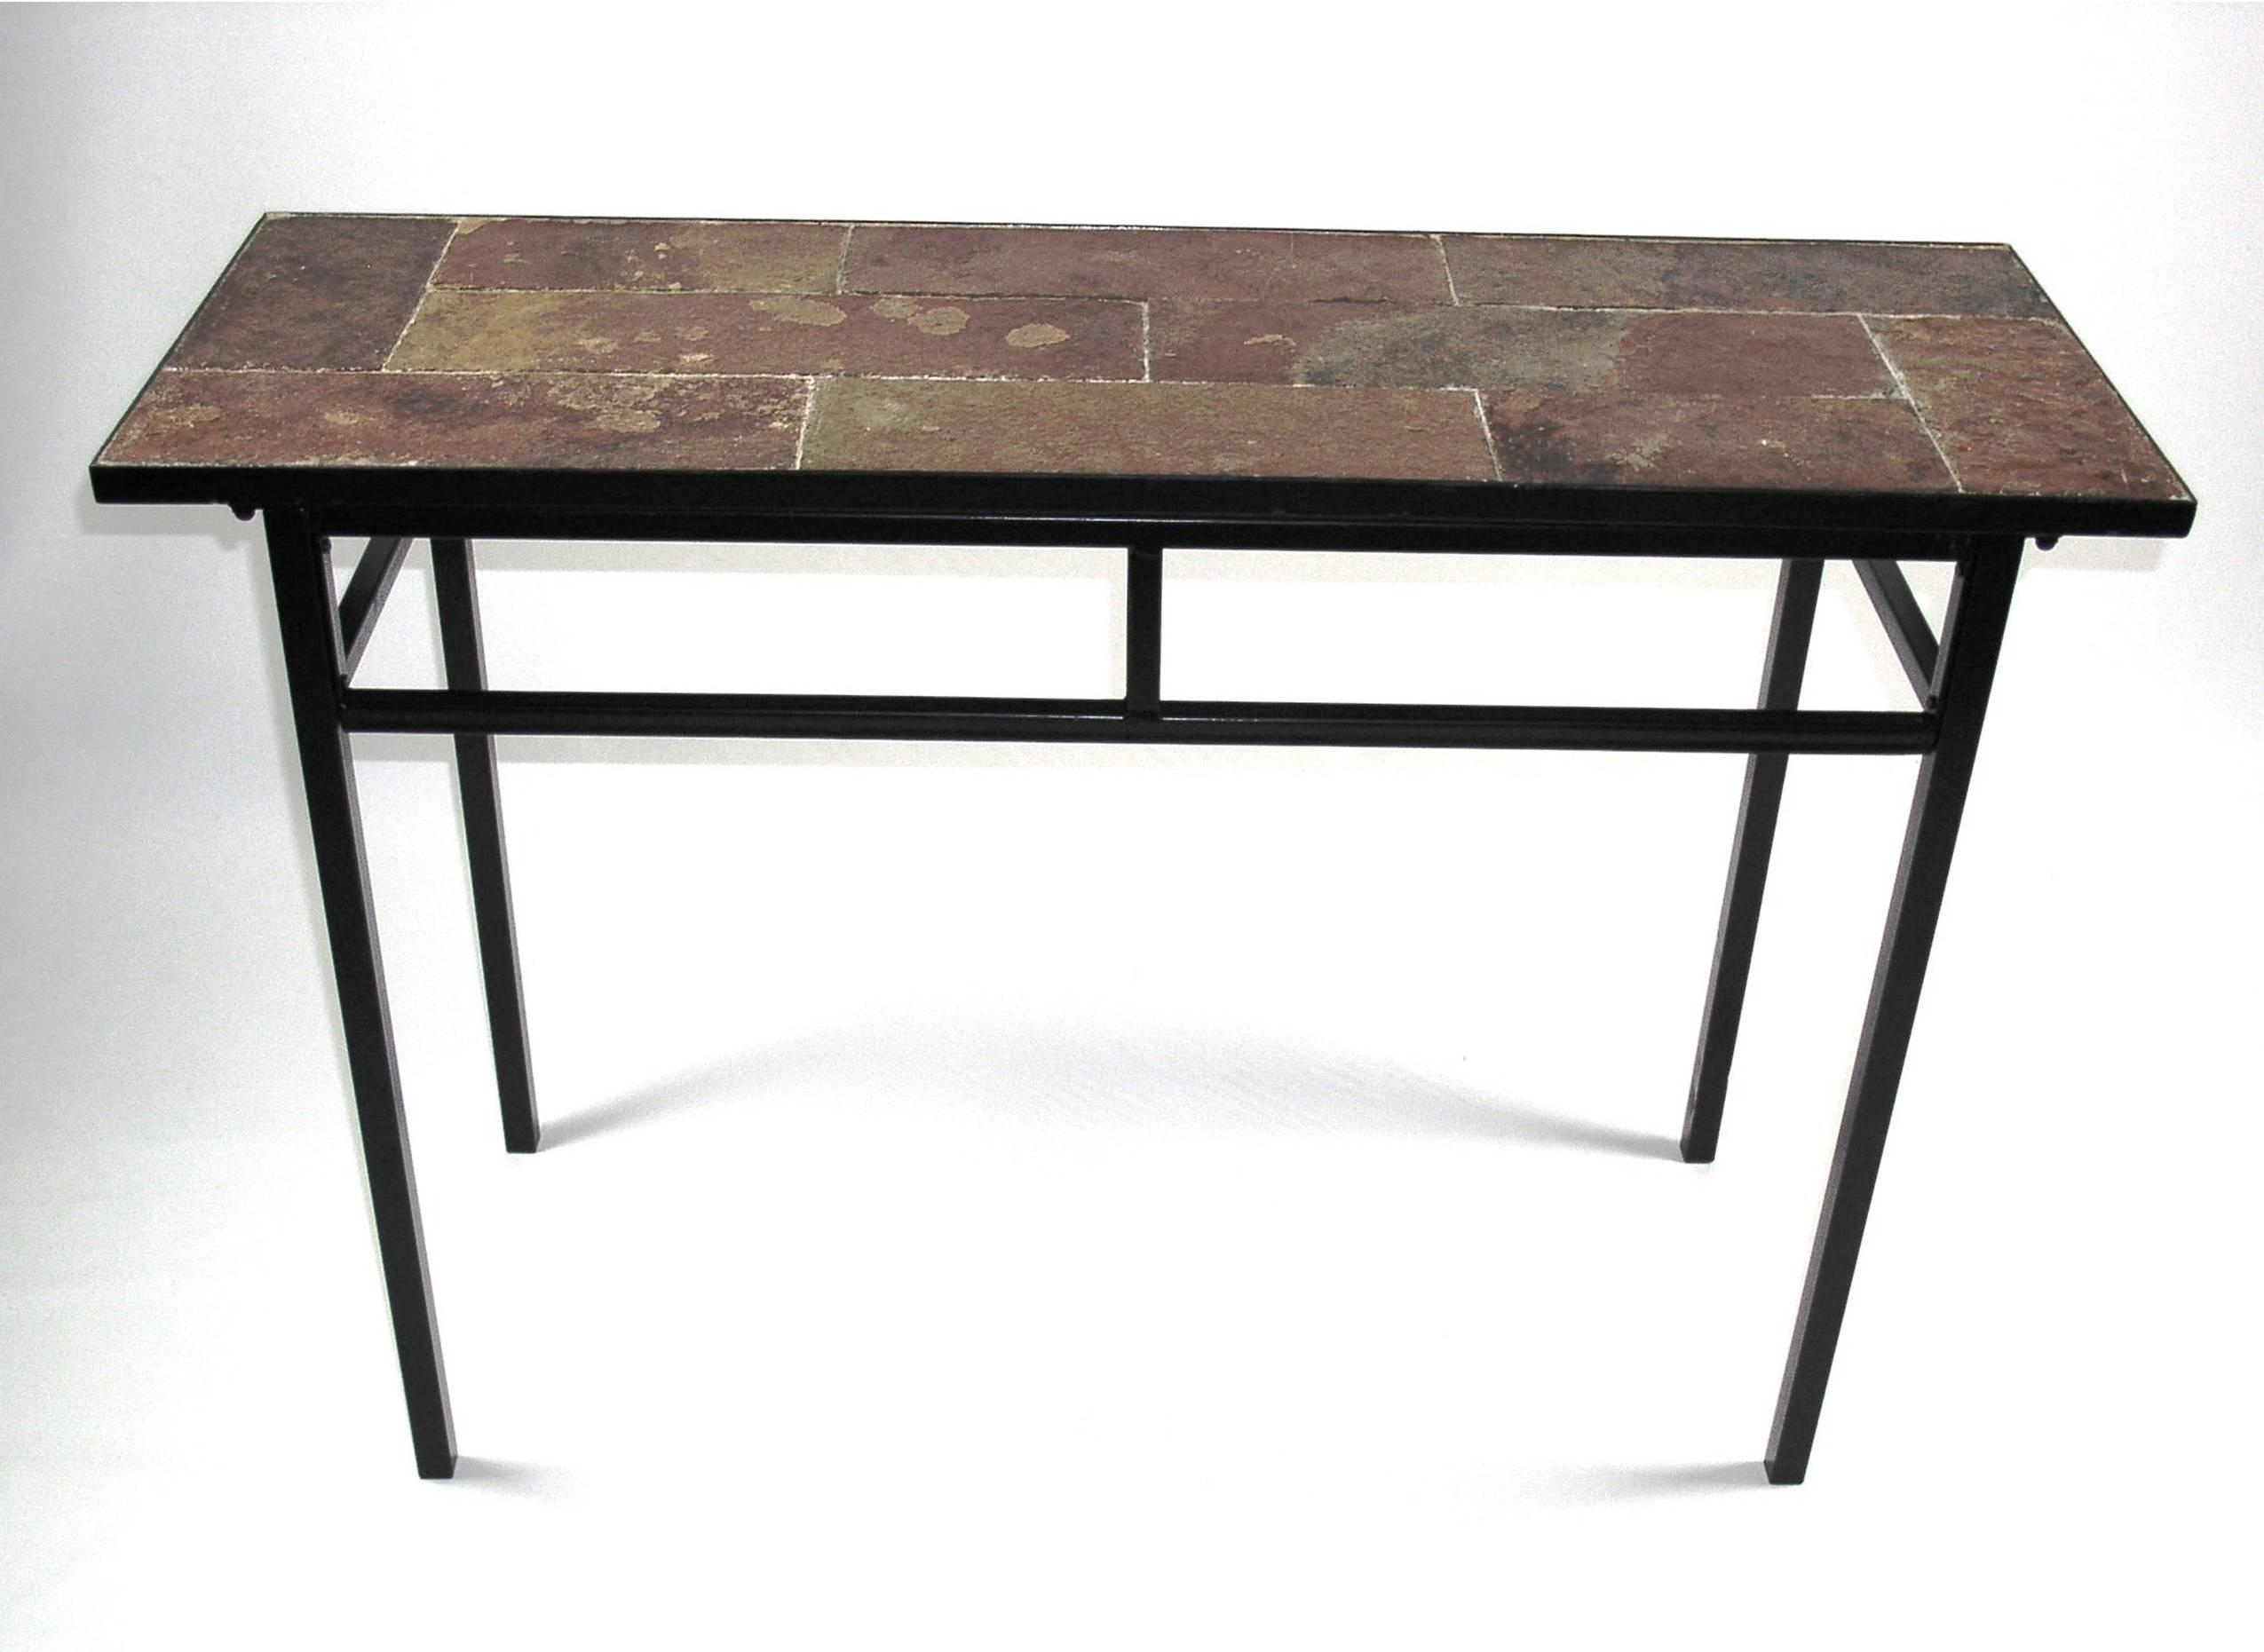 4D Concepts Sofa Table W/ Slate Top In Metal - Beyond Stores with Slate Sofa Tables